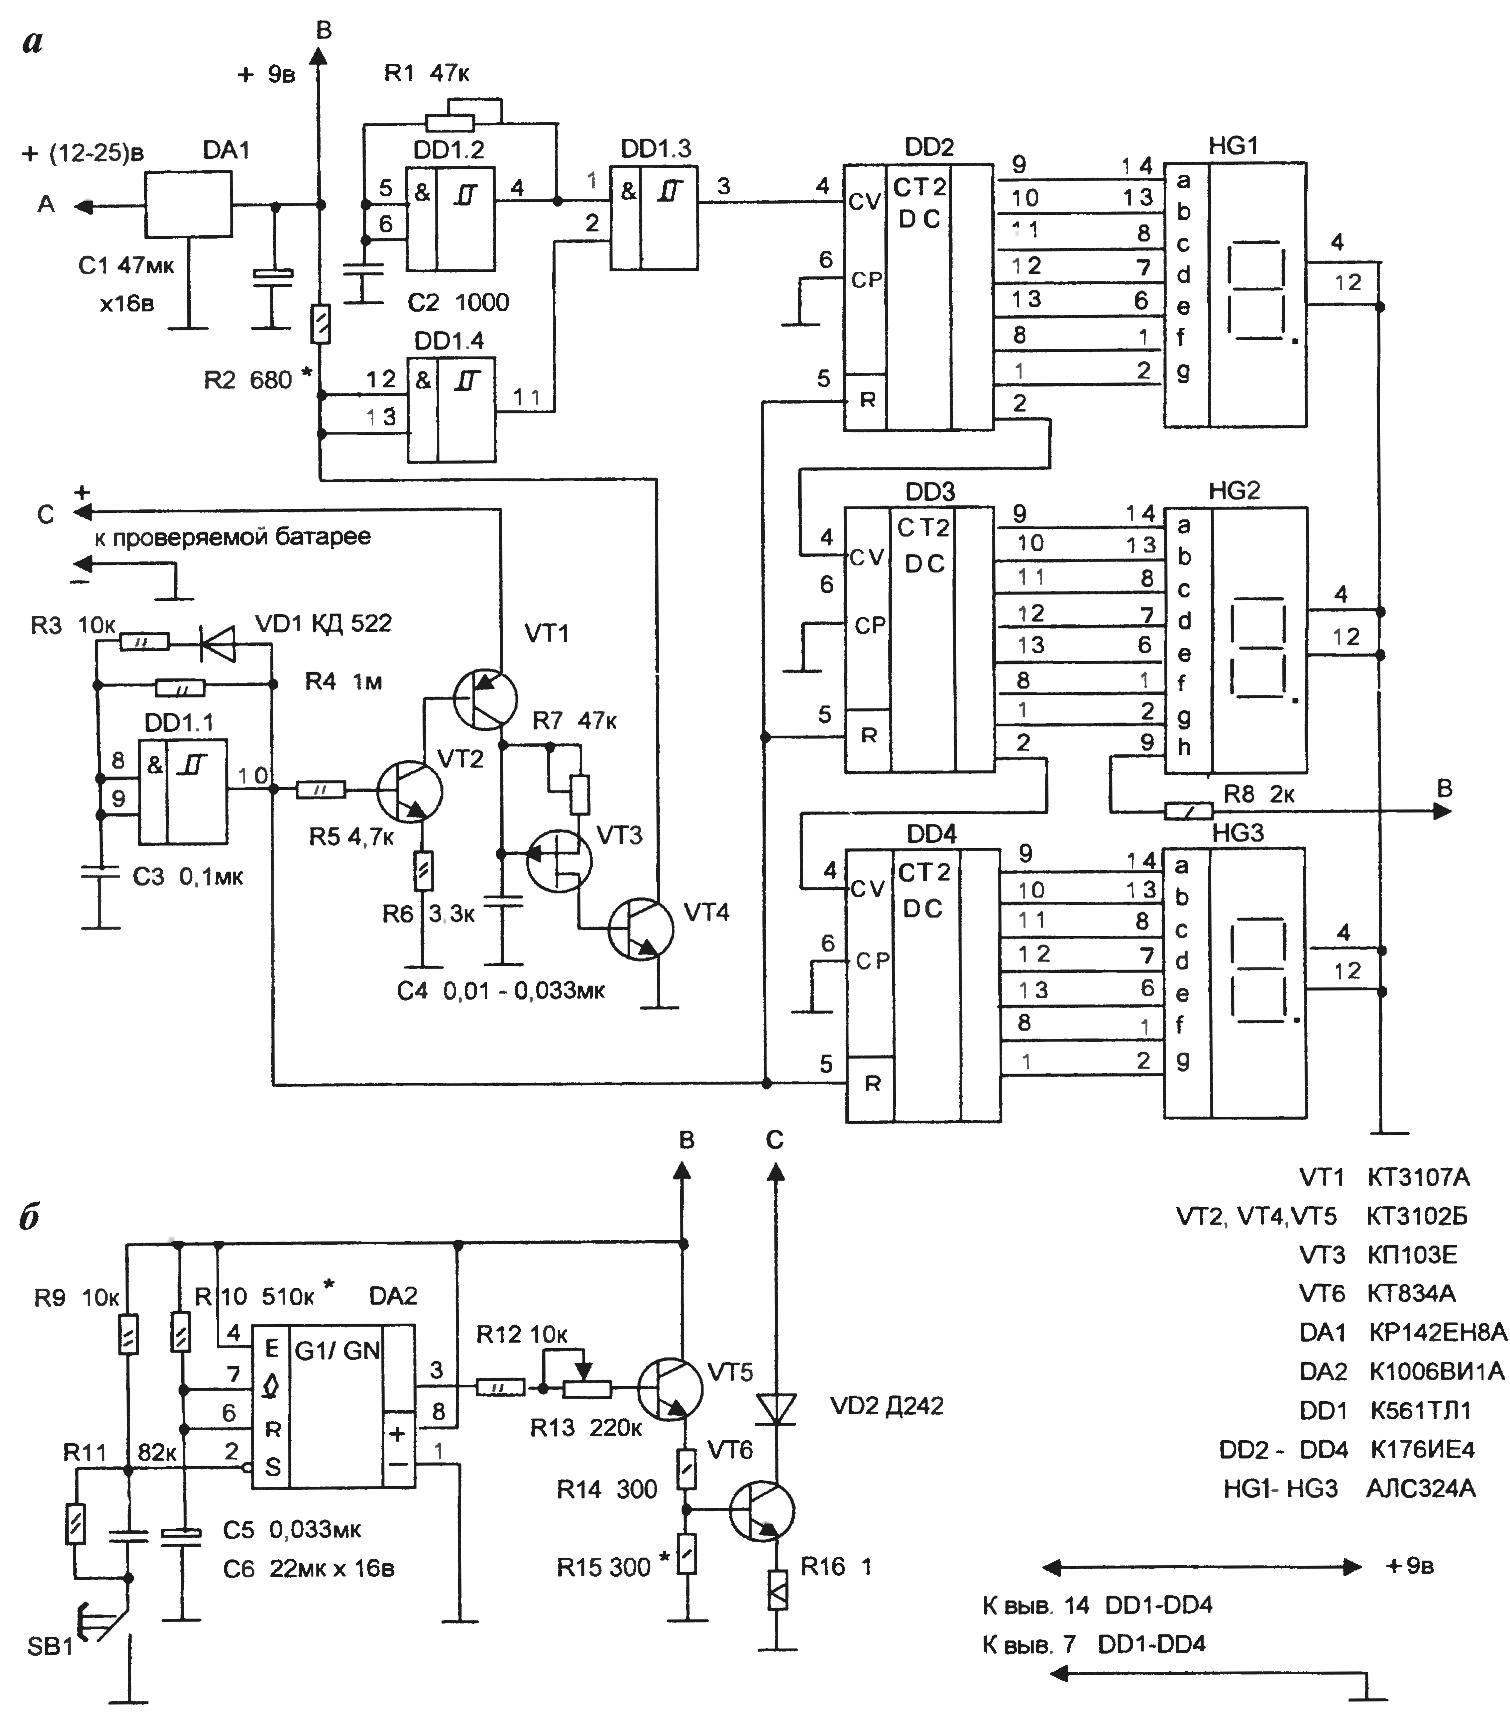 Circuit diagram of digital voltmeter (a) and active load (b) of the device to check battery capacity is low